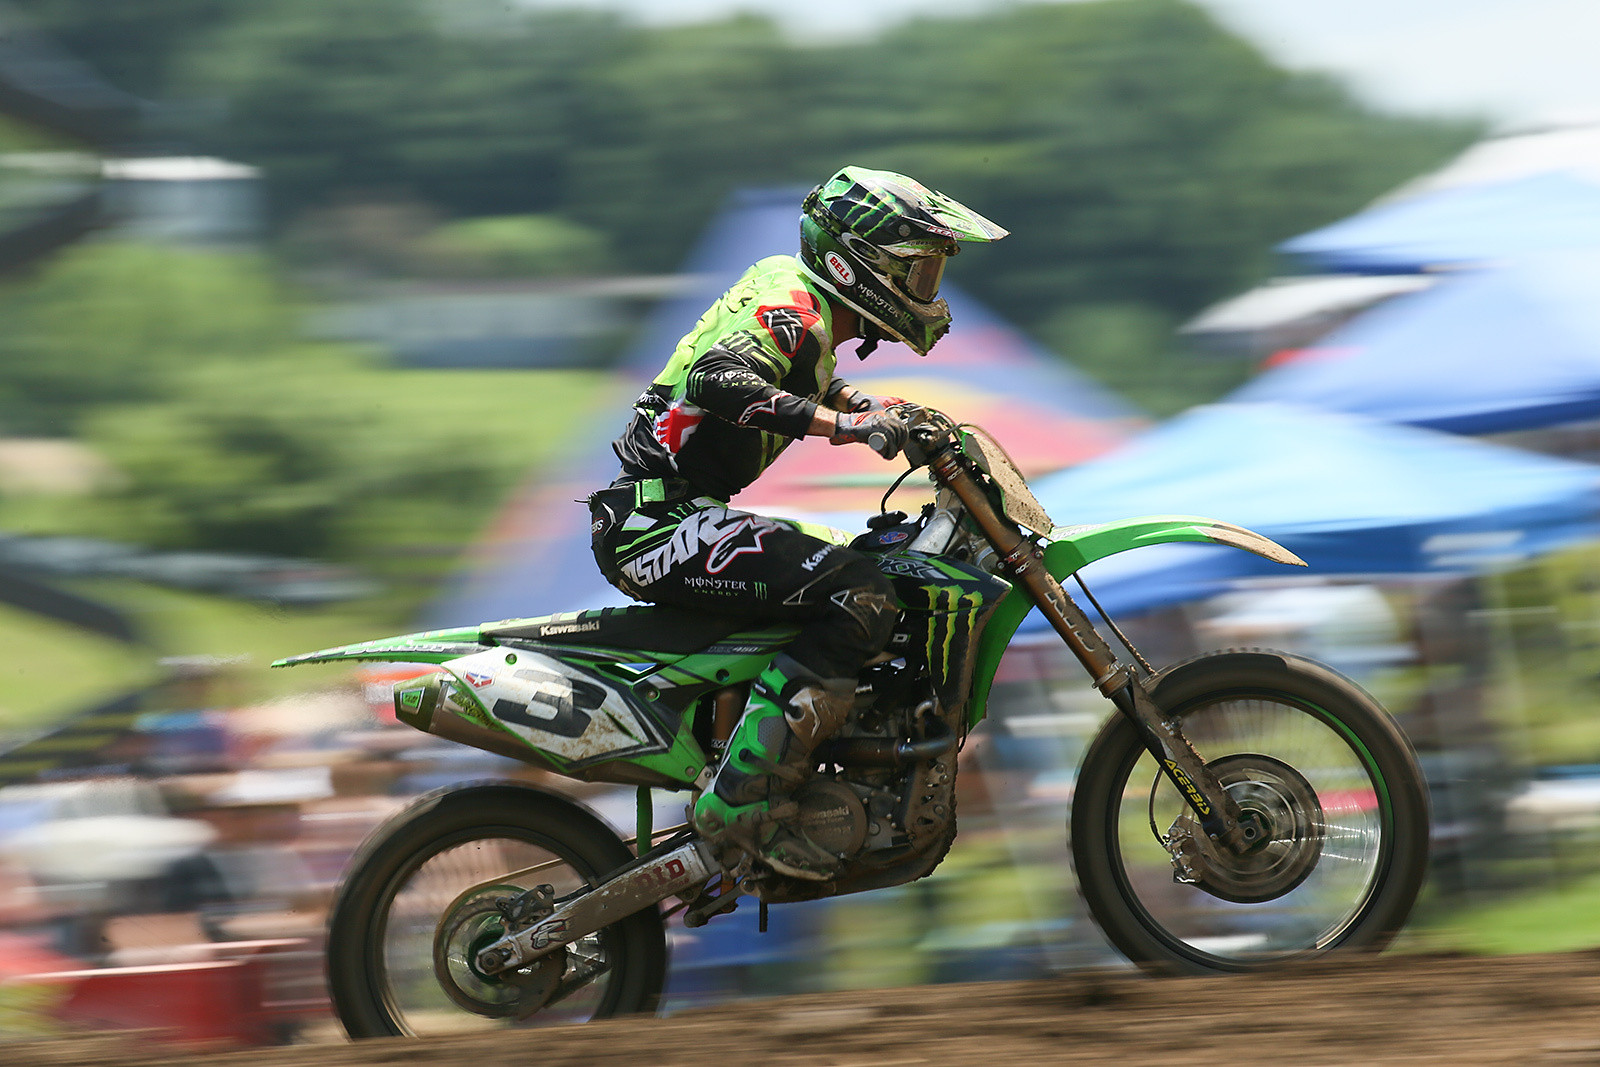 Eli Tomac started out in eighth spot, and worked his way to second. Afterwards, he said that he thought he was in the lead. Unfortunately, that spot belonged to Jason Anderson, who had checked out.